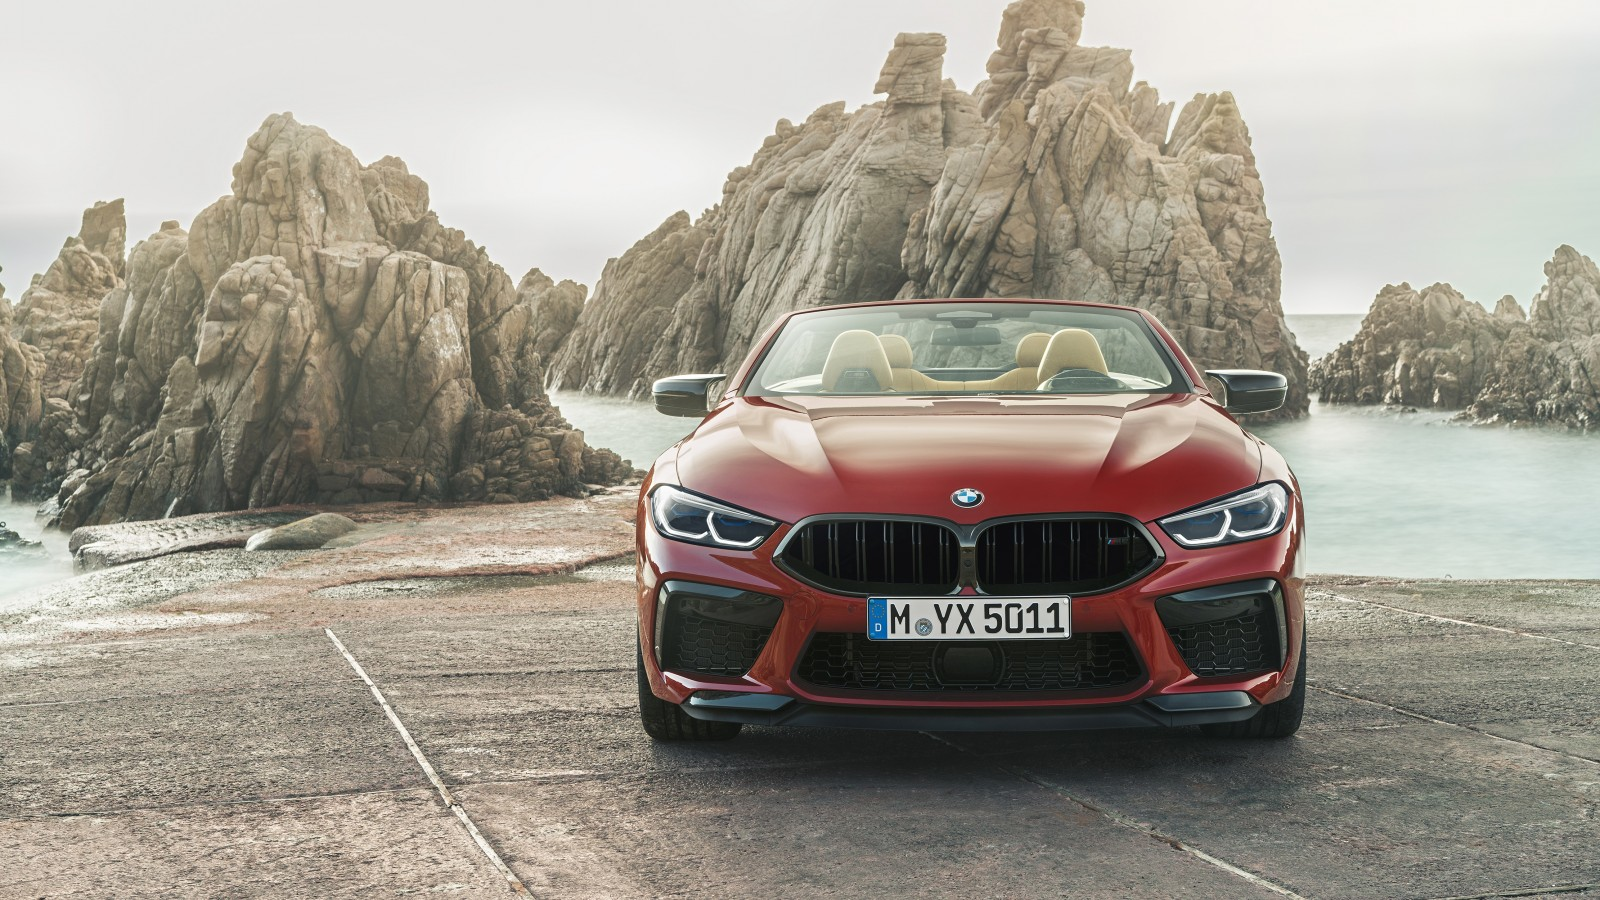 bmw m8 competition cabrio 2019 4k 2 wallpaper hd car